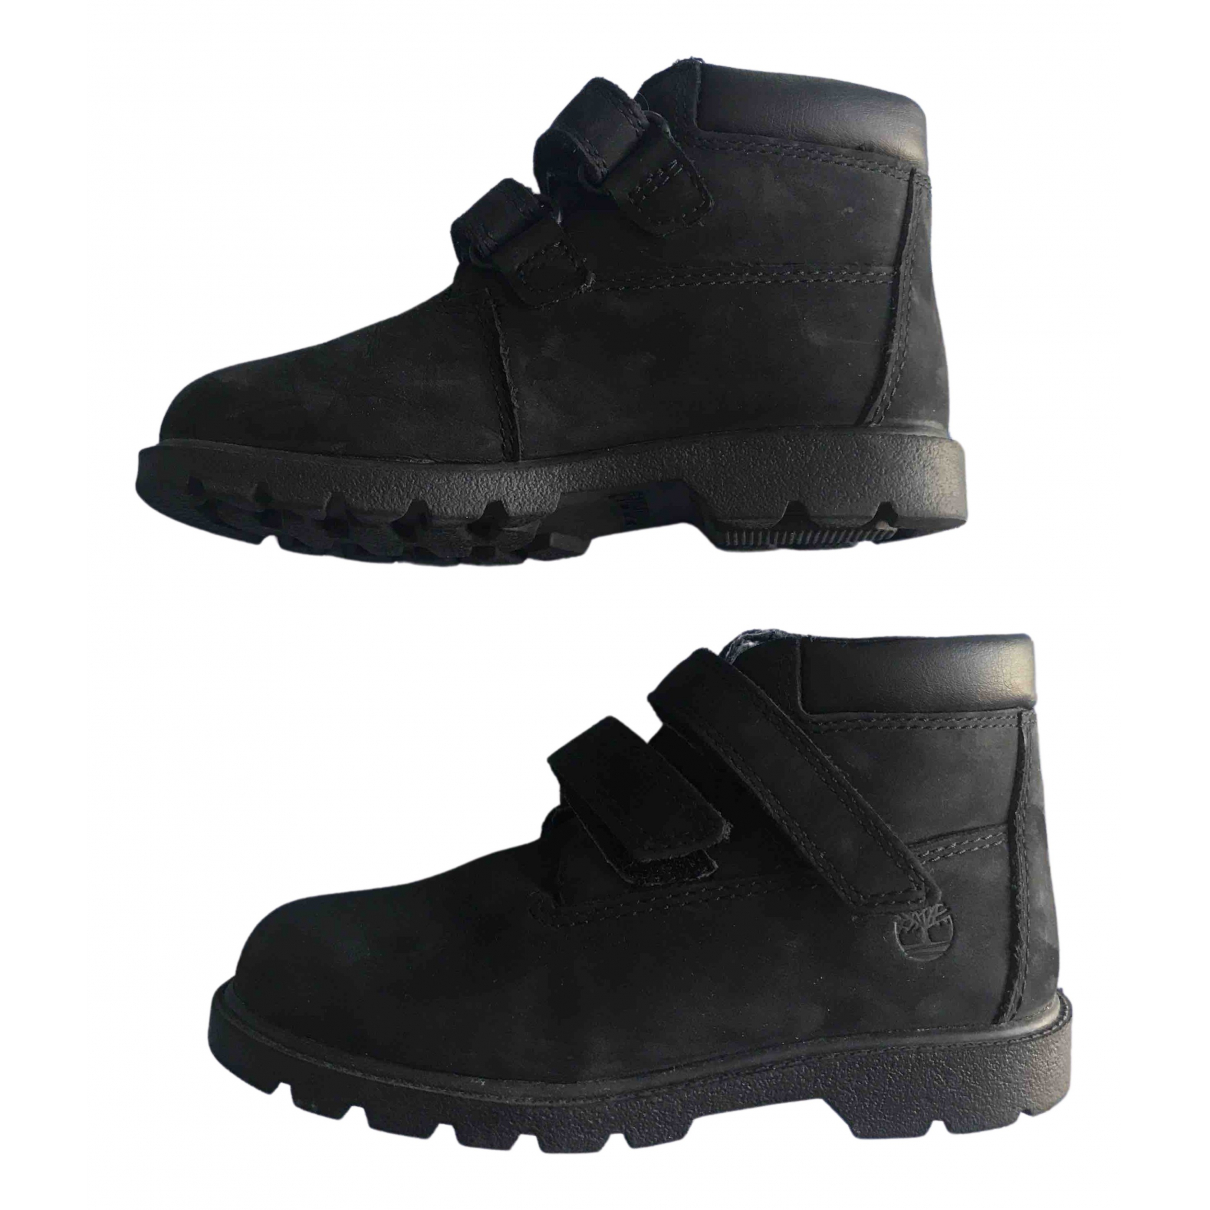 Timberland N Black Leather Boots for Kids 10.5 US